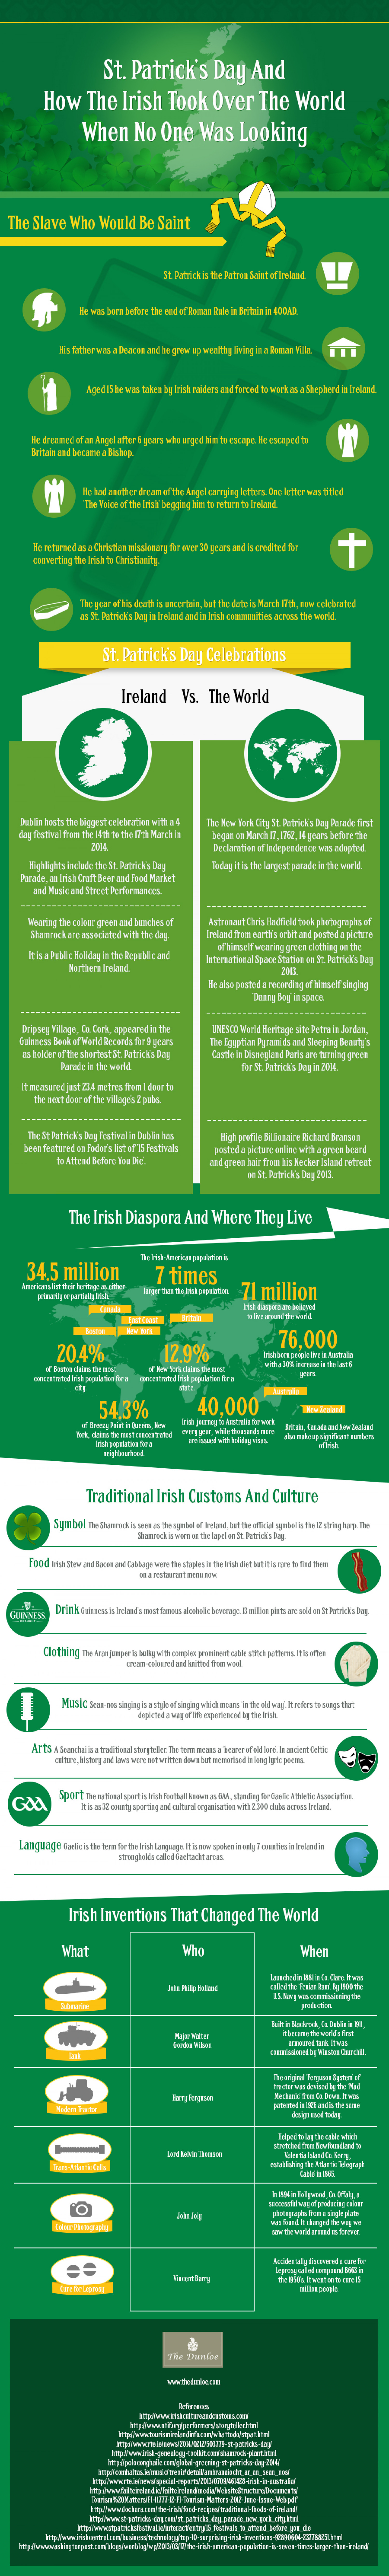 St. Patrick's Day, An Infographic Infographic